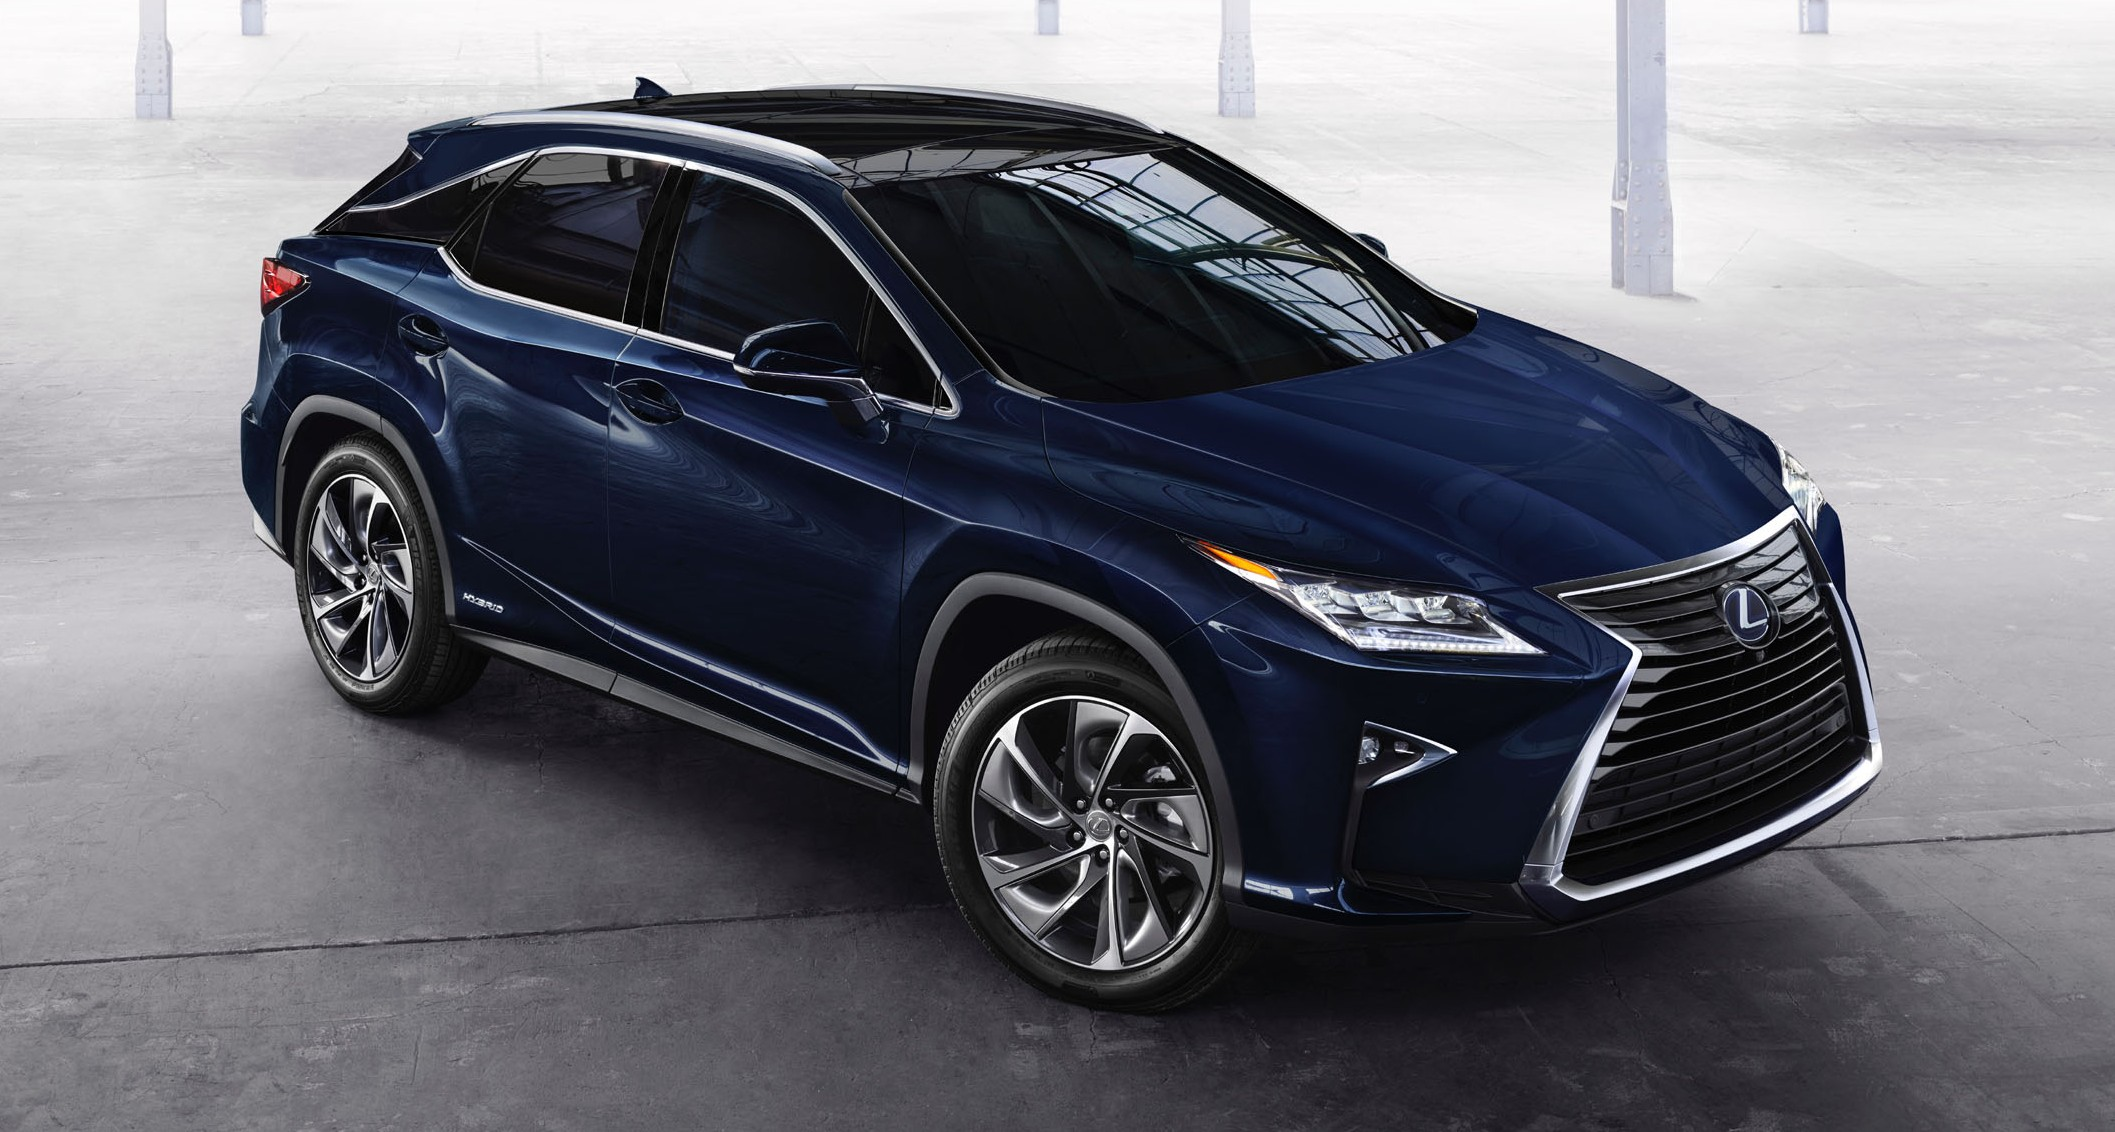 Lexus RX 450h and RX 350 F Sport debut at NYIAS Image 323748